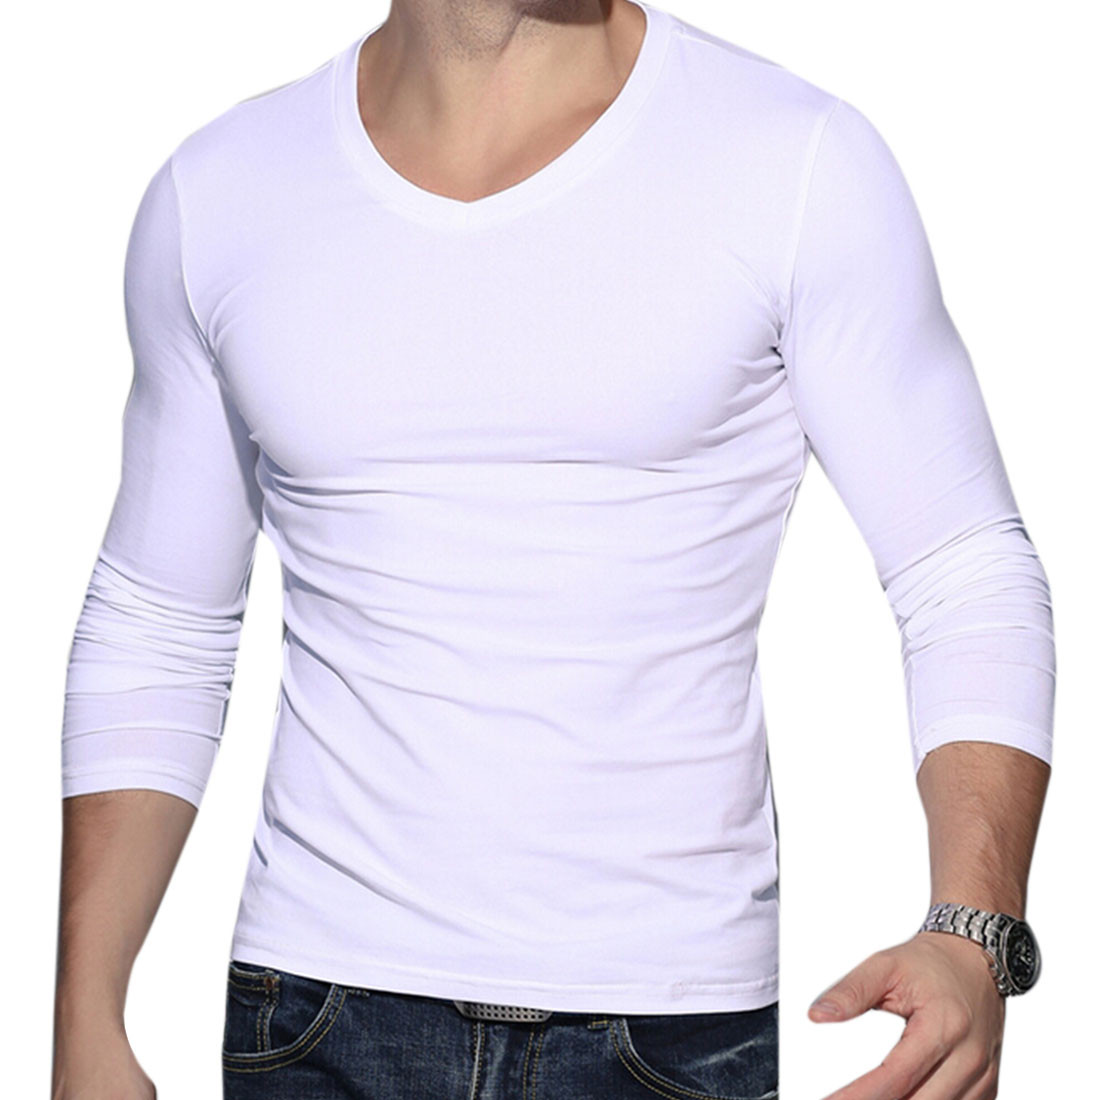 Solid Pure White Long Sleeve V Neck Cotton Fit Base Shirt T-Shirt ...